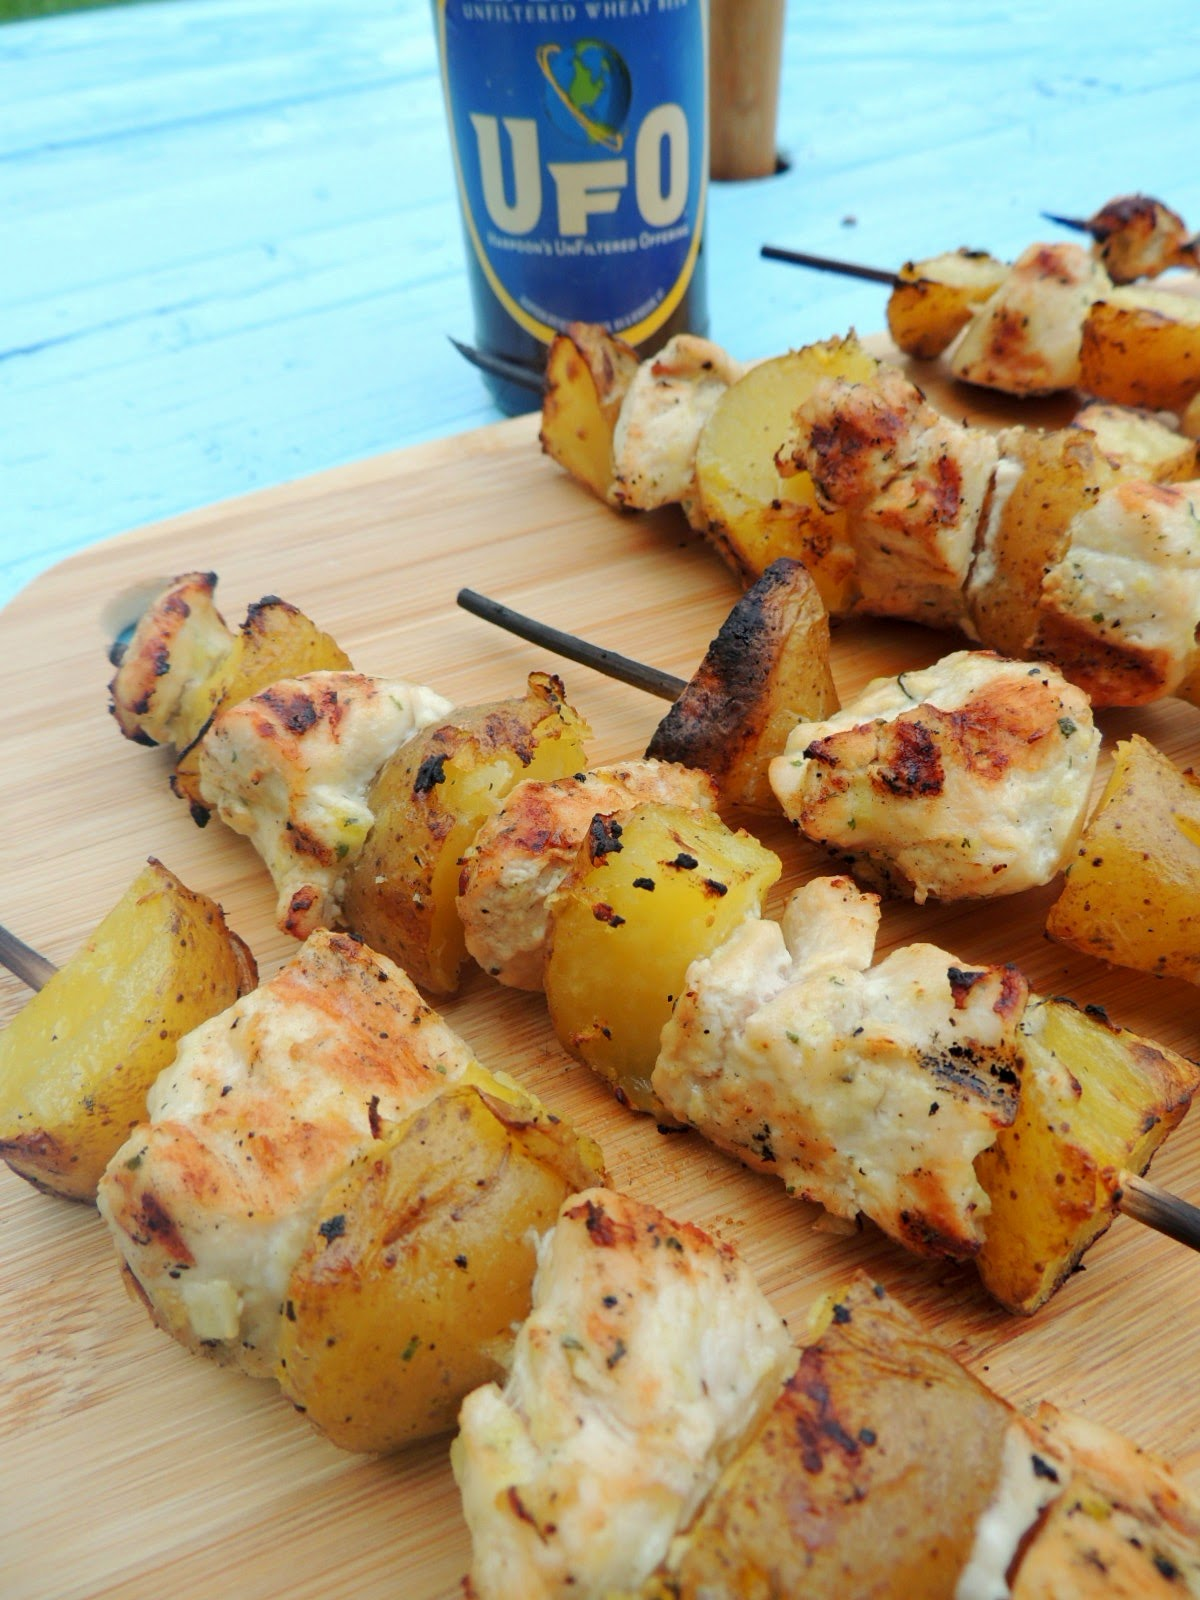 Juicy chunks of chicken and hearty potatoes are marinated in a simple 4 ingredient marinade, skewered, and then grilled to perfection in these Beer & Ranch Chicken & Potato Kabobs.